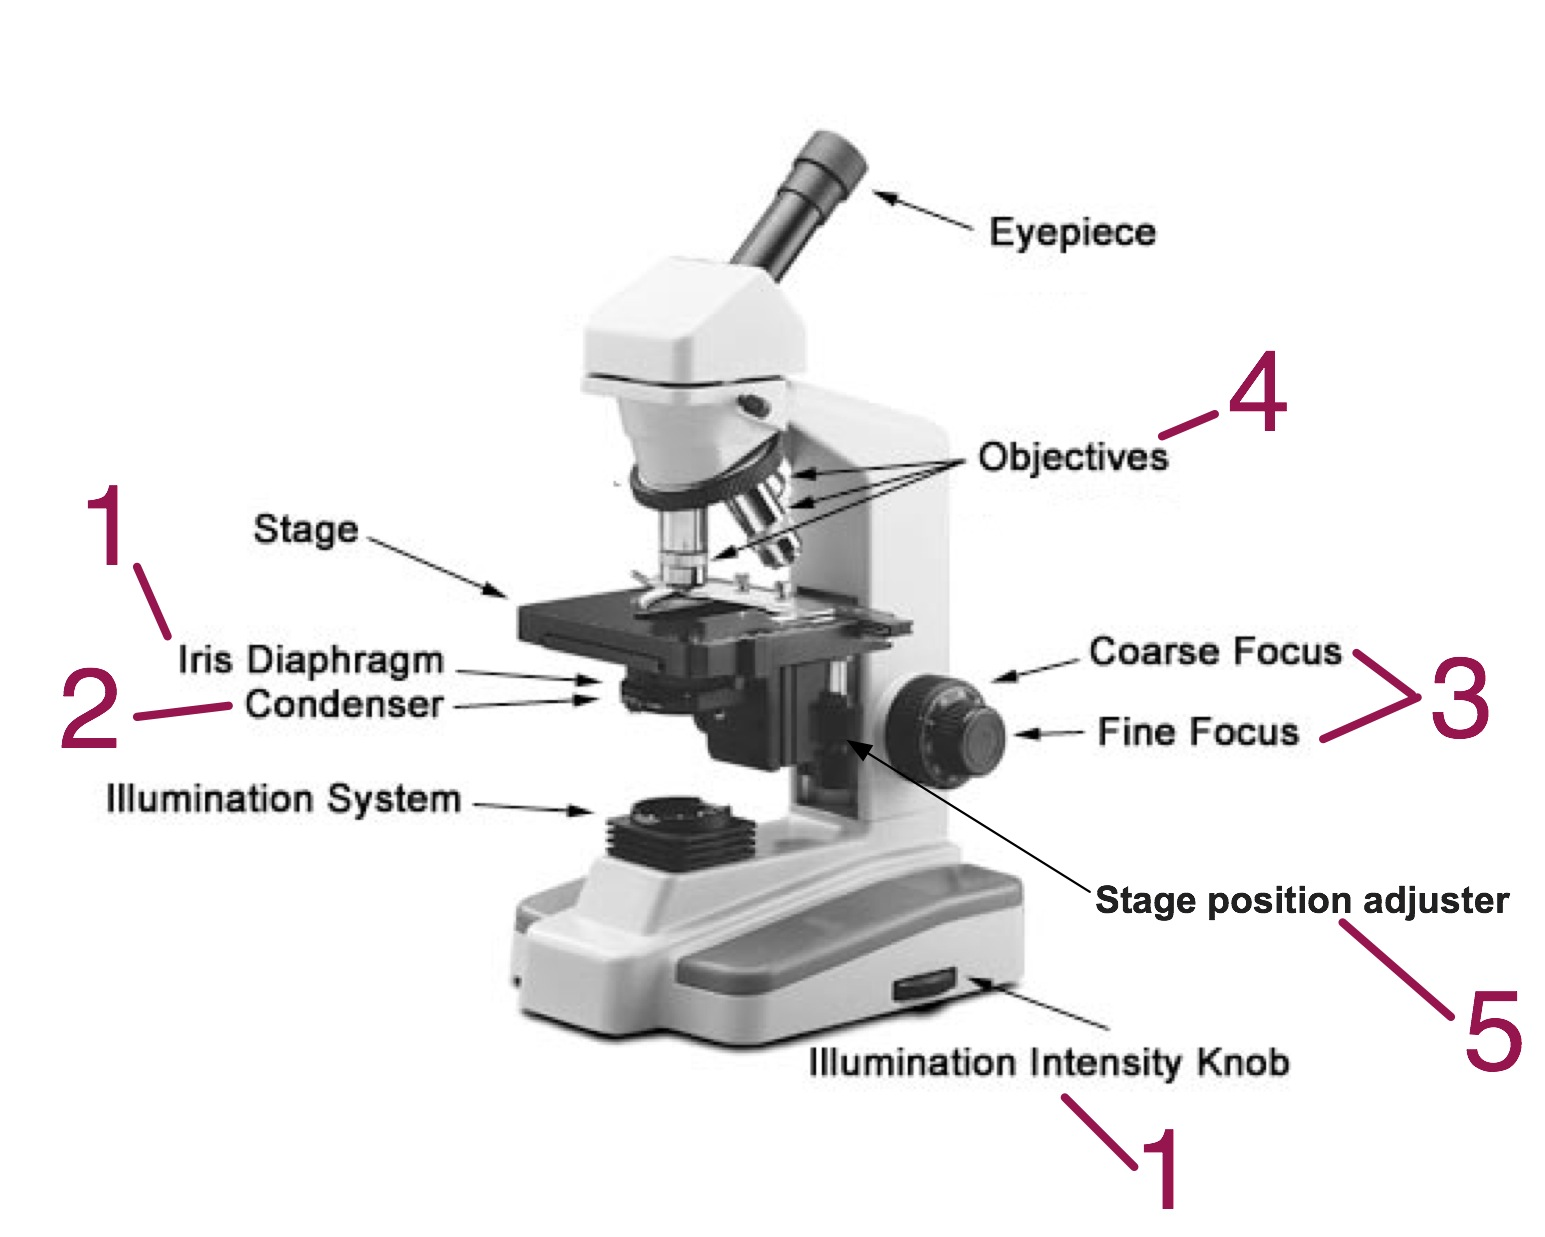 Parts of a microscope - numbers 1 - 5 relate to the above description